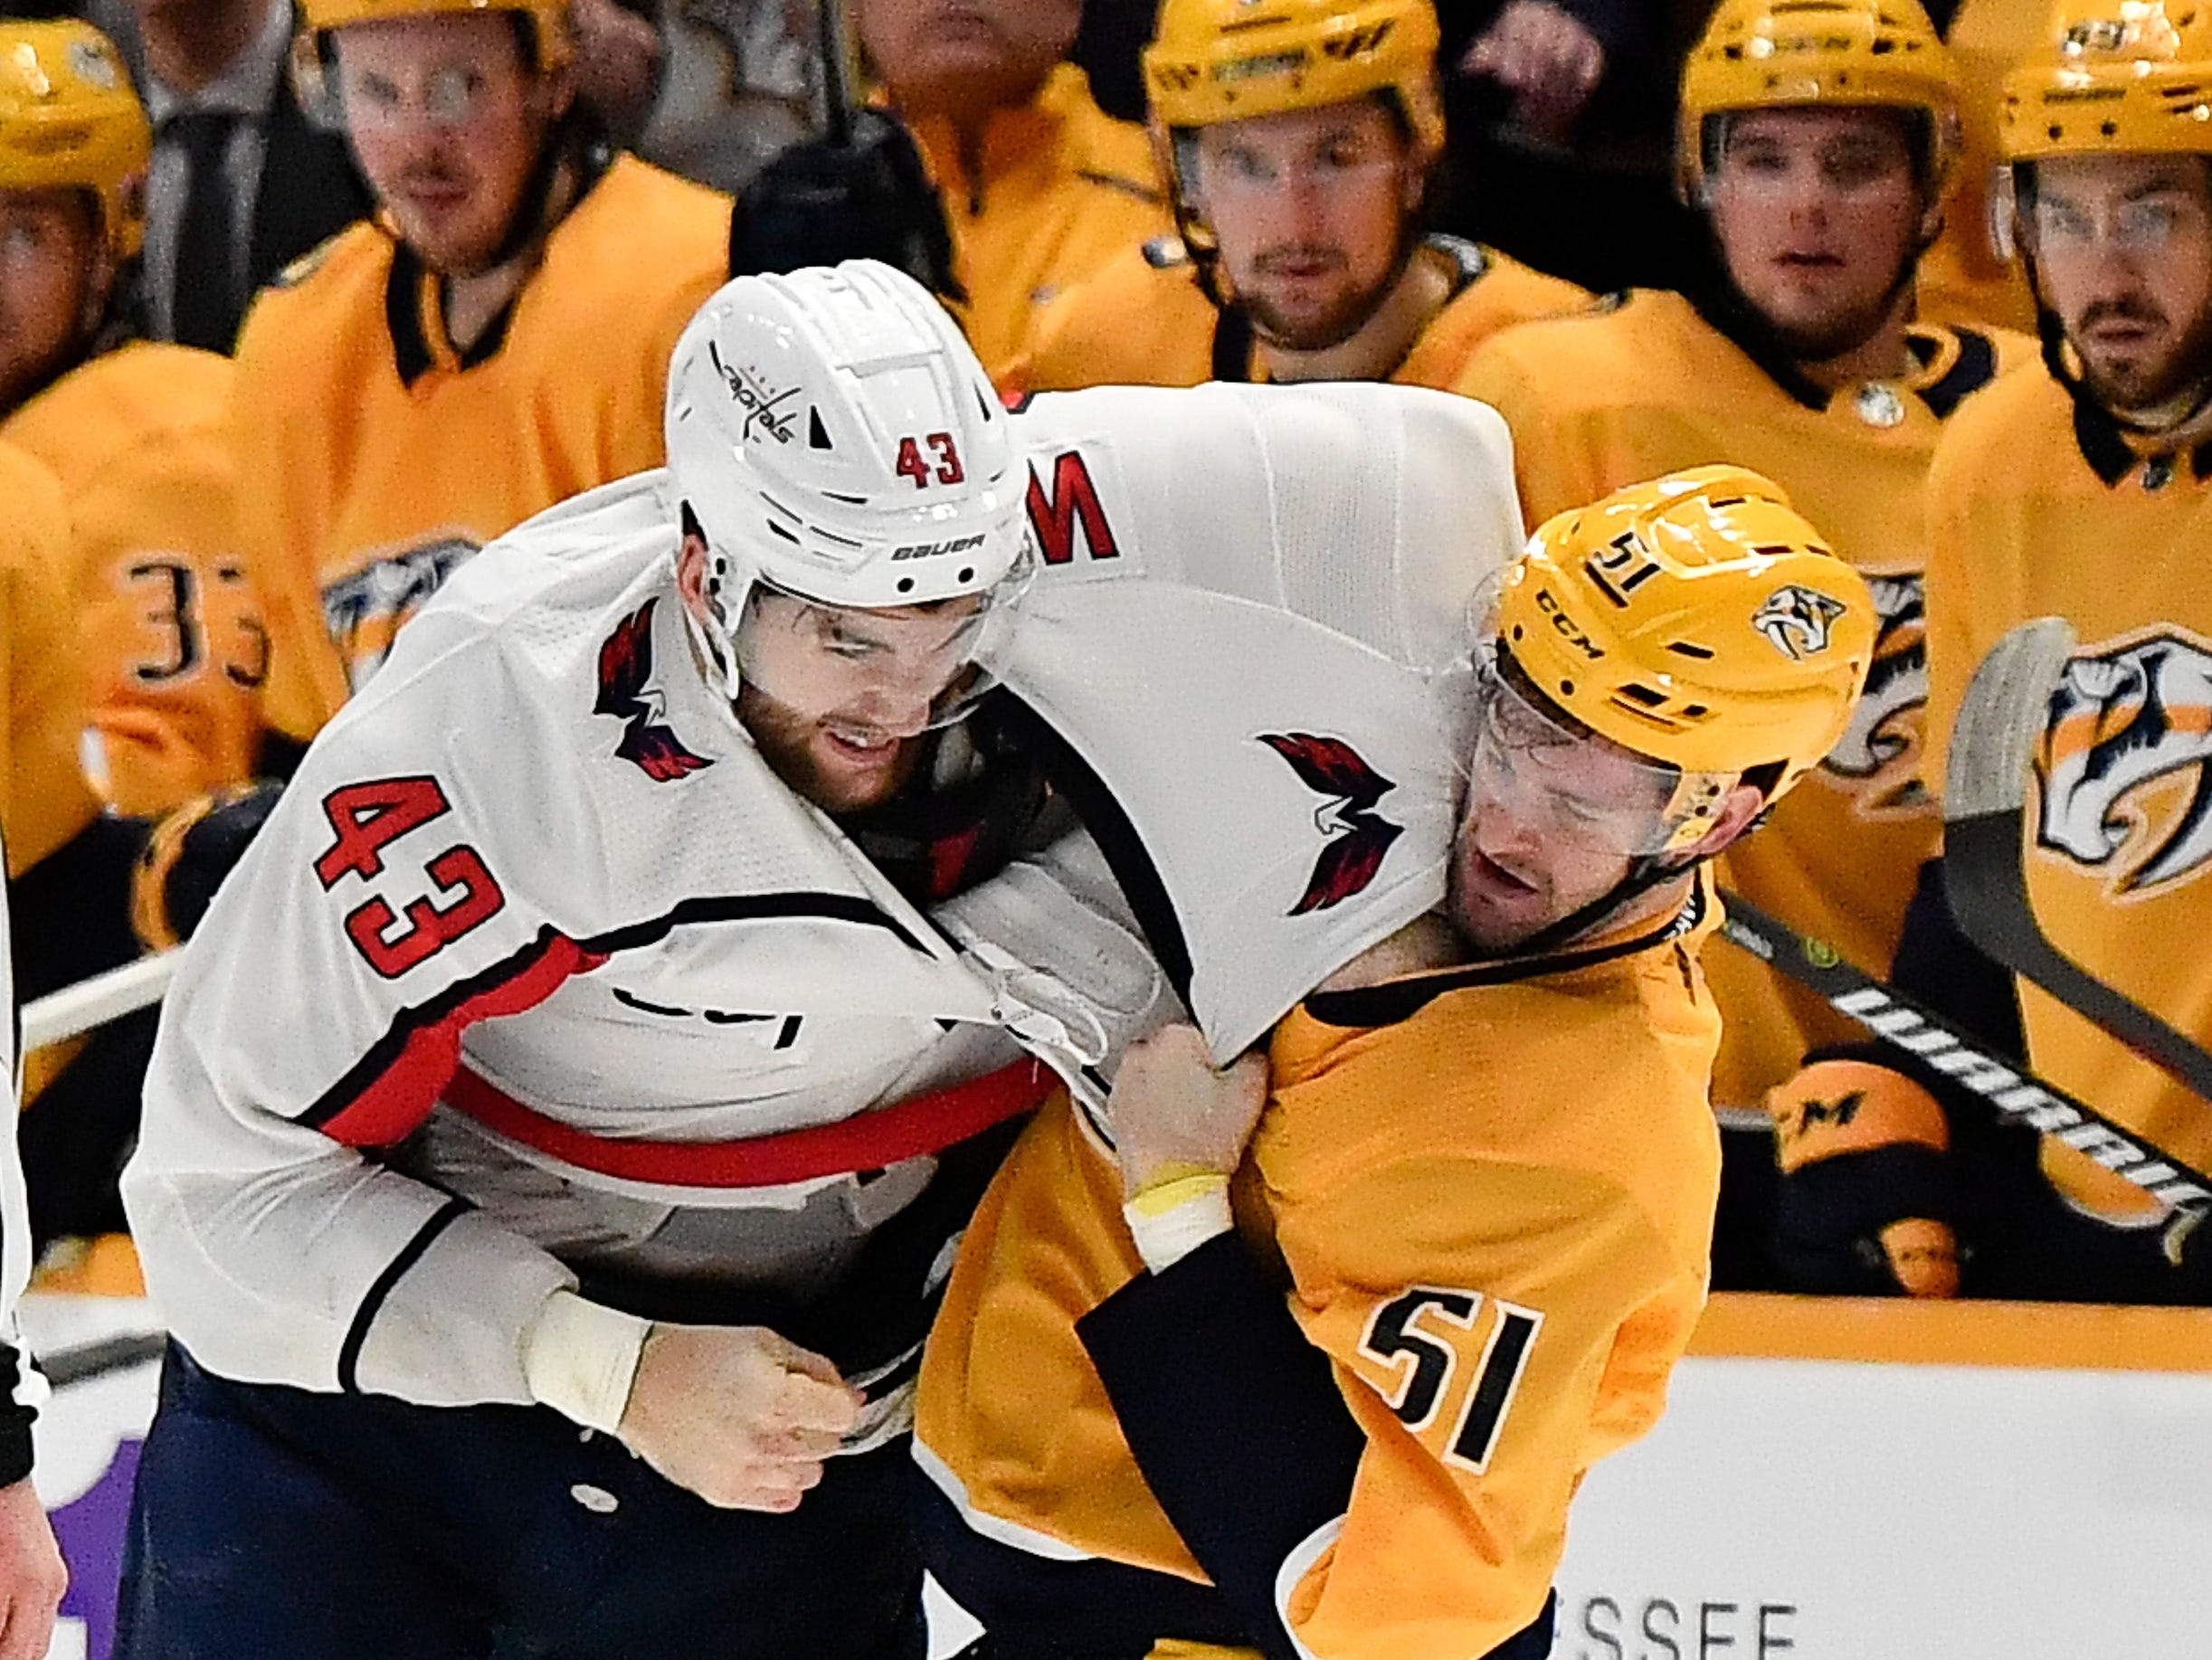 Predators left wing Austin Watson (51) fights with Capitals right wing Tom Wilson (43) during the second period at Bridgestone Arena Tuesday, Jan. 15, 2019, in Nashville, Tenn.